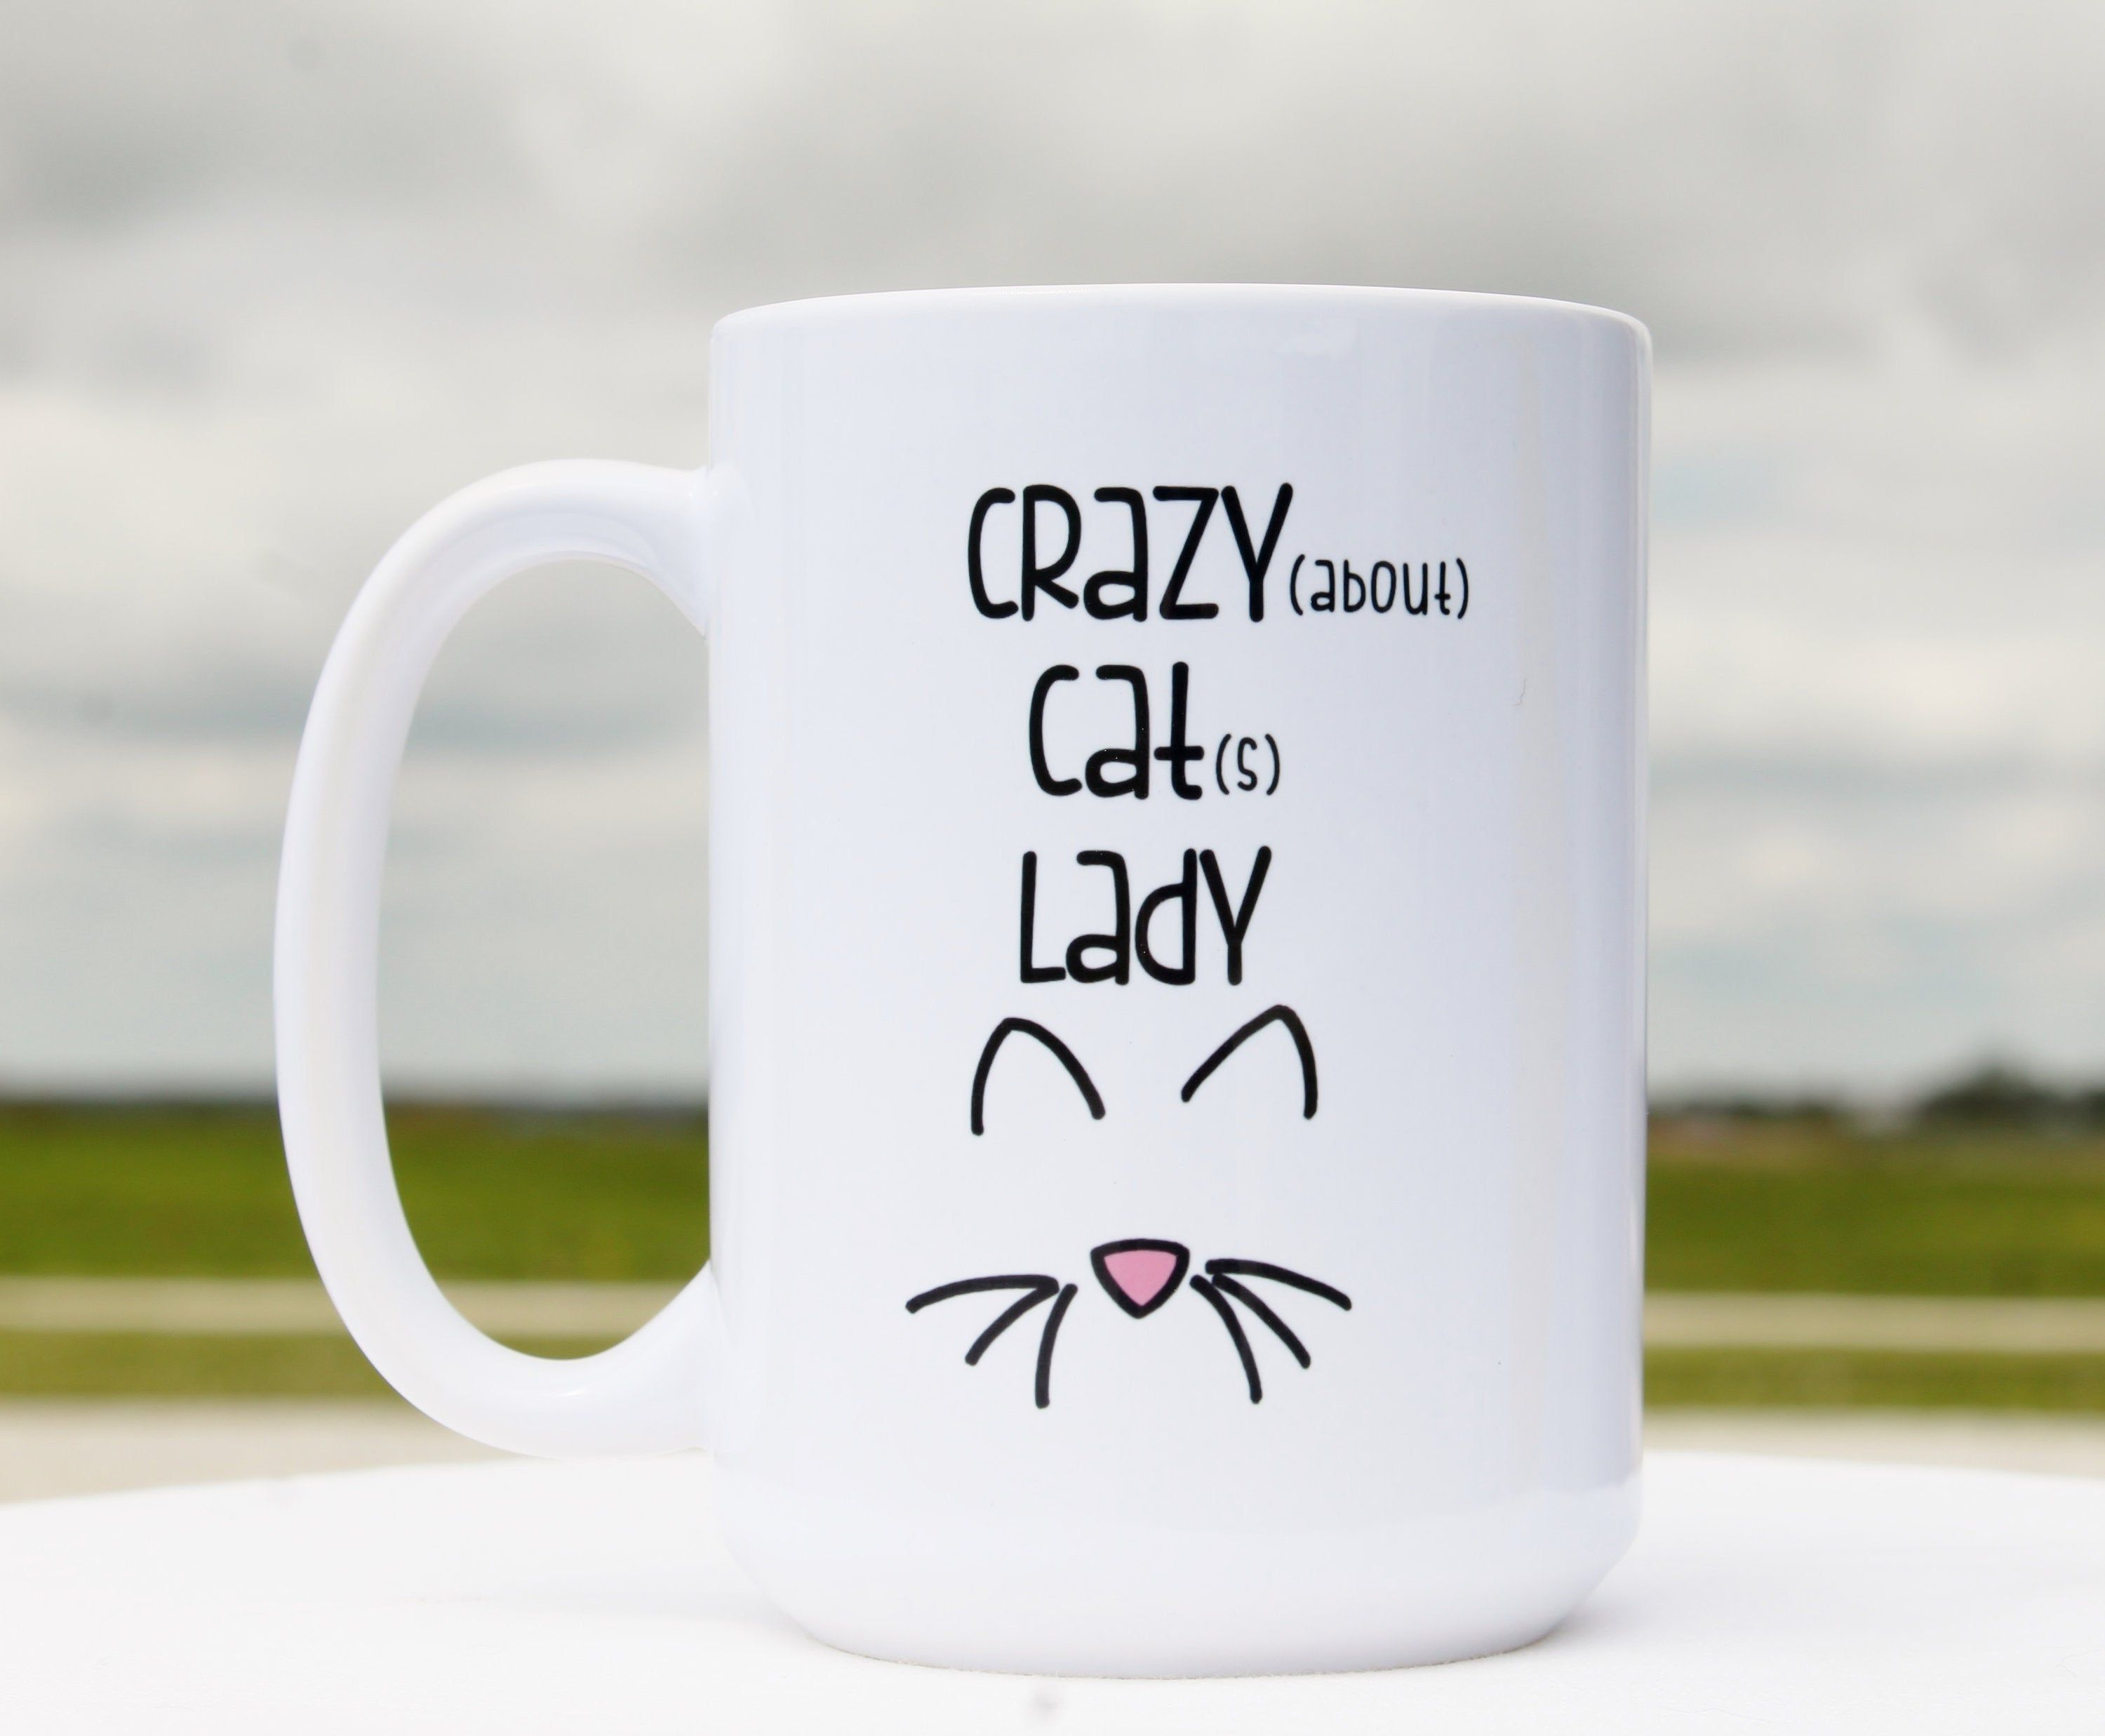 Funny Coffee Mugs,Funny Coffee Cup,Crazy Cat Lady,Crazy About Cats Lady, Funny Coffee Mugs for Women,Funny Coffee Mug Gift for Cat Lovers